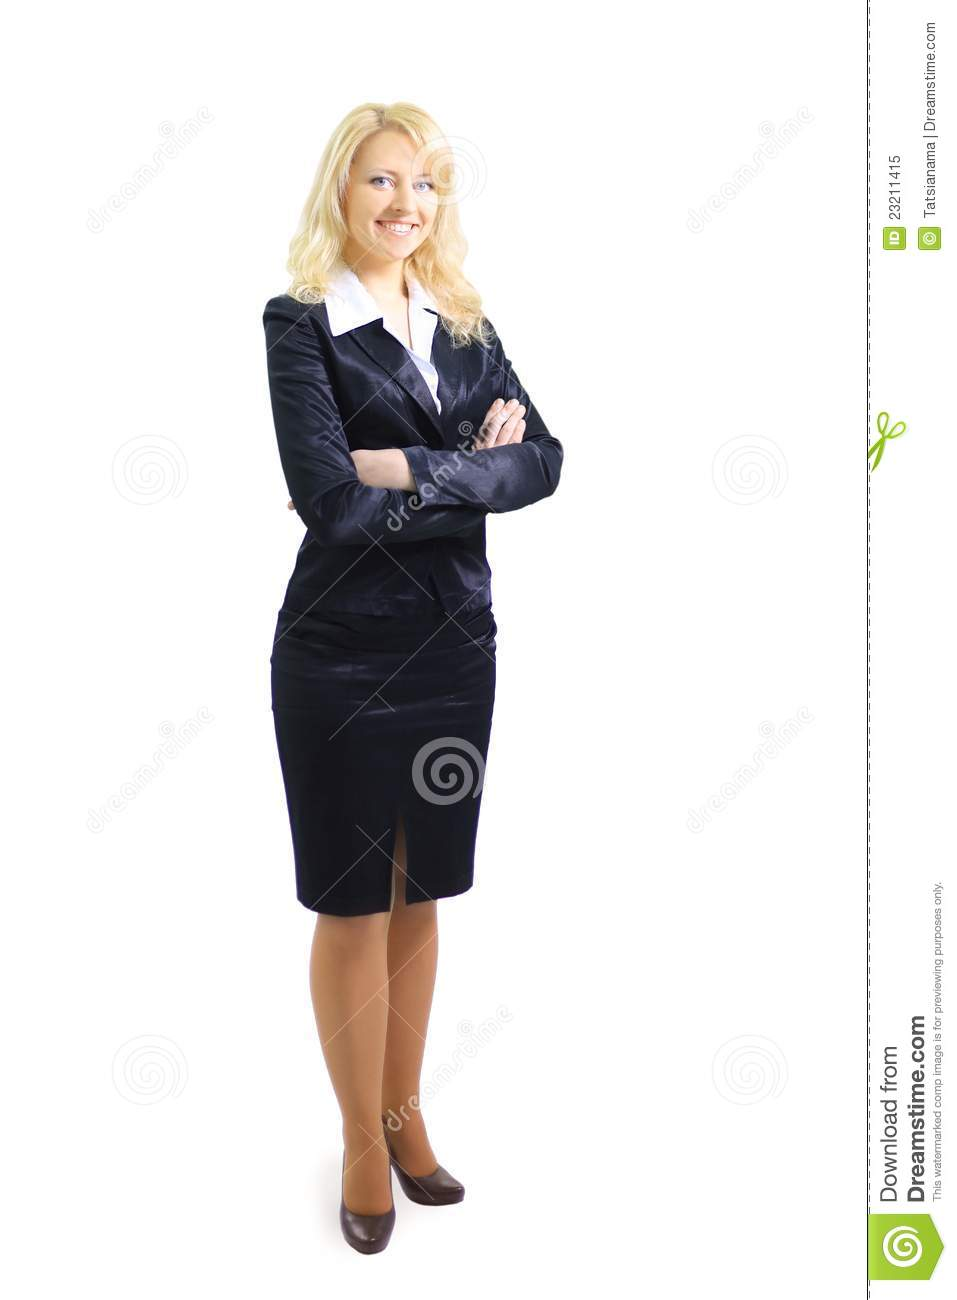 Confident business woman standing wearing elegant clothes - isolated